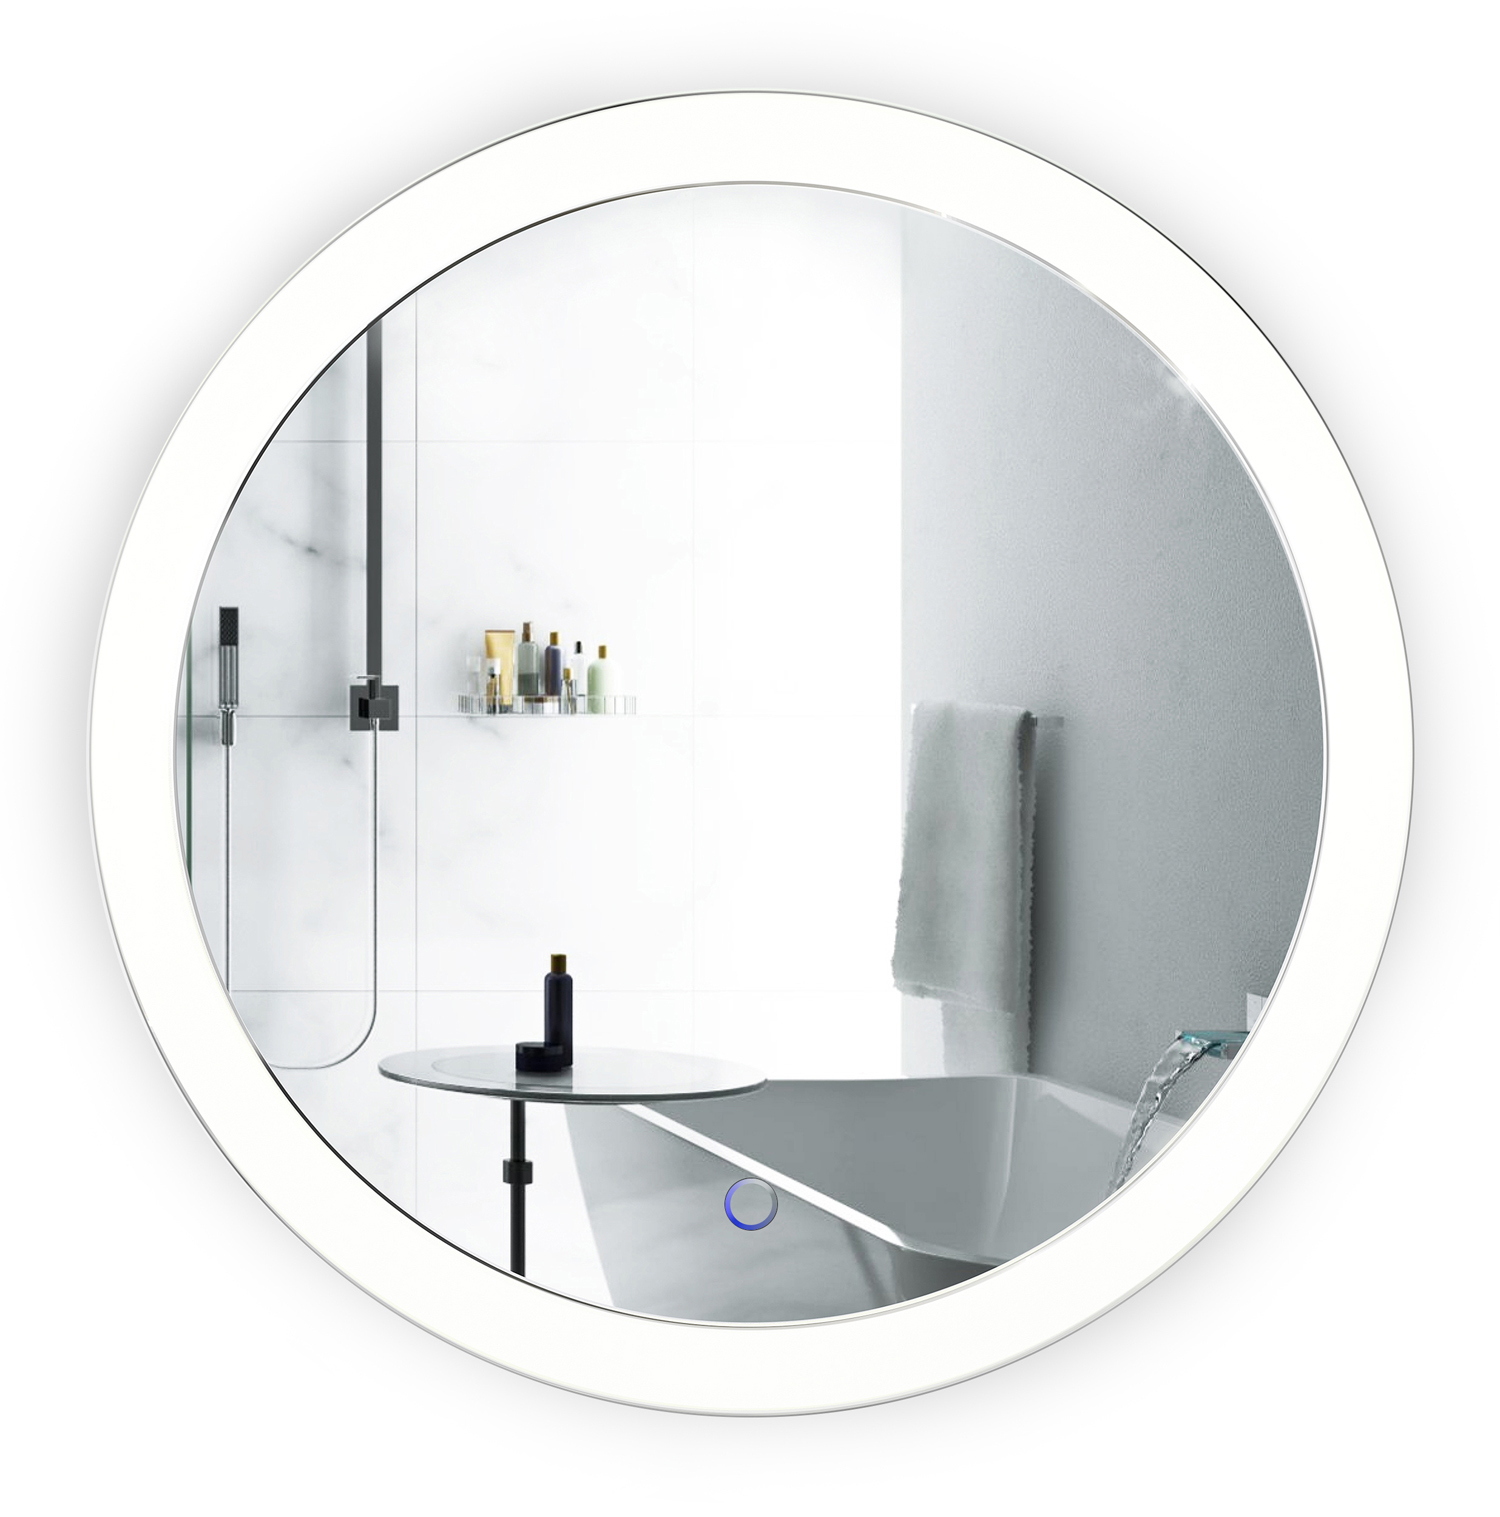 Lighted Bathroom Wall Mirror Large: LED 22″ Round Bathroom Mirror Lighted With Dimmer